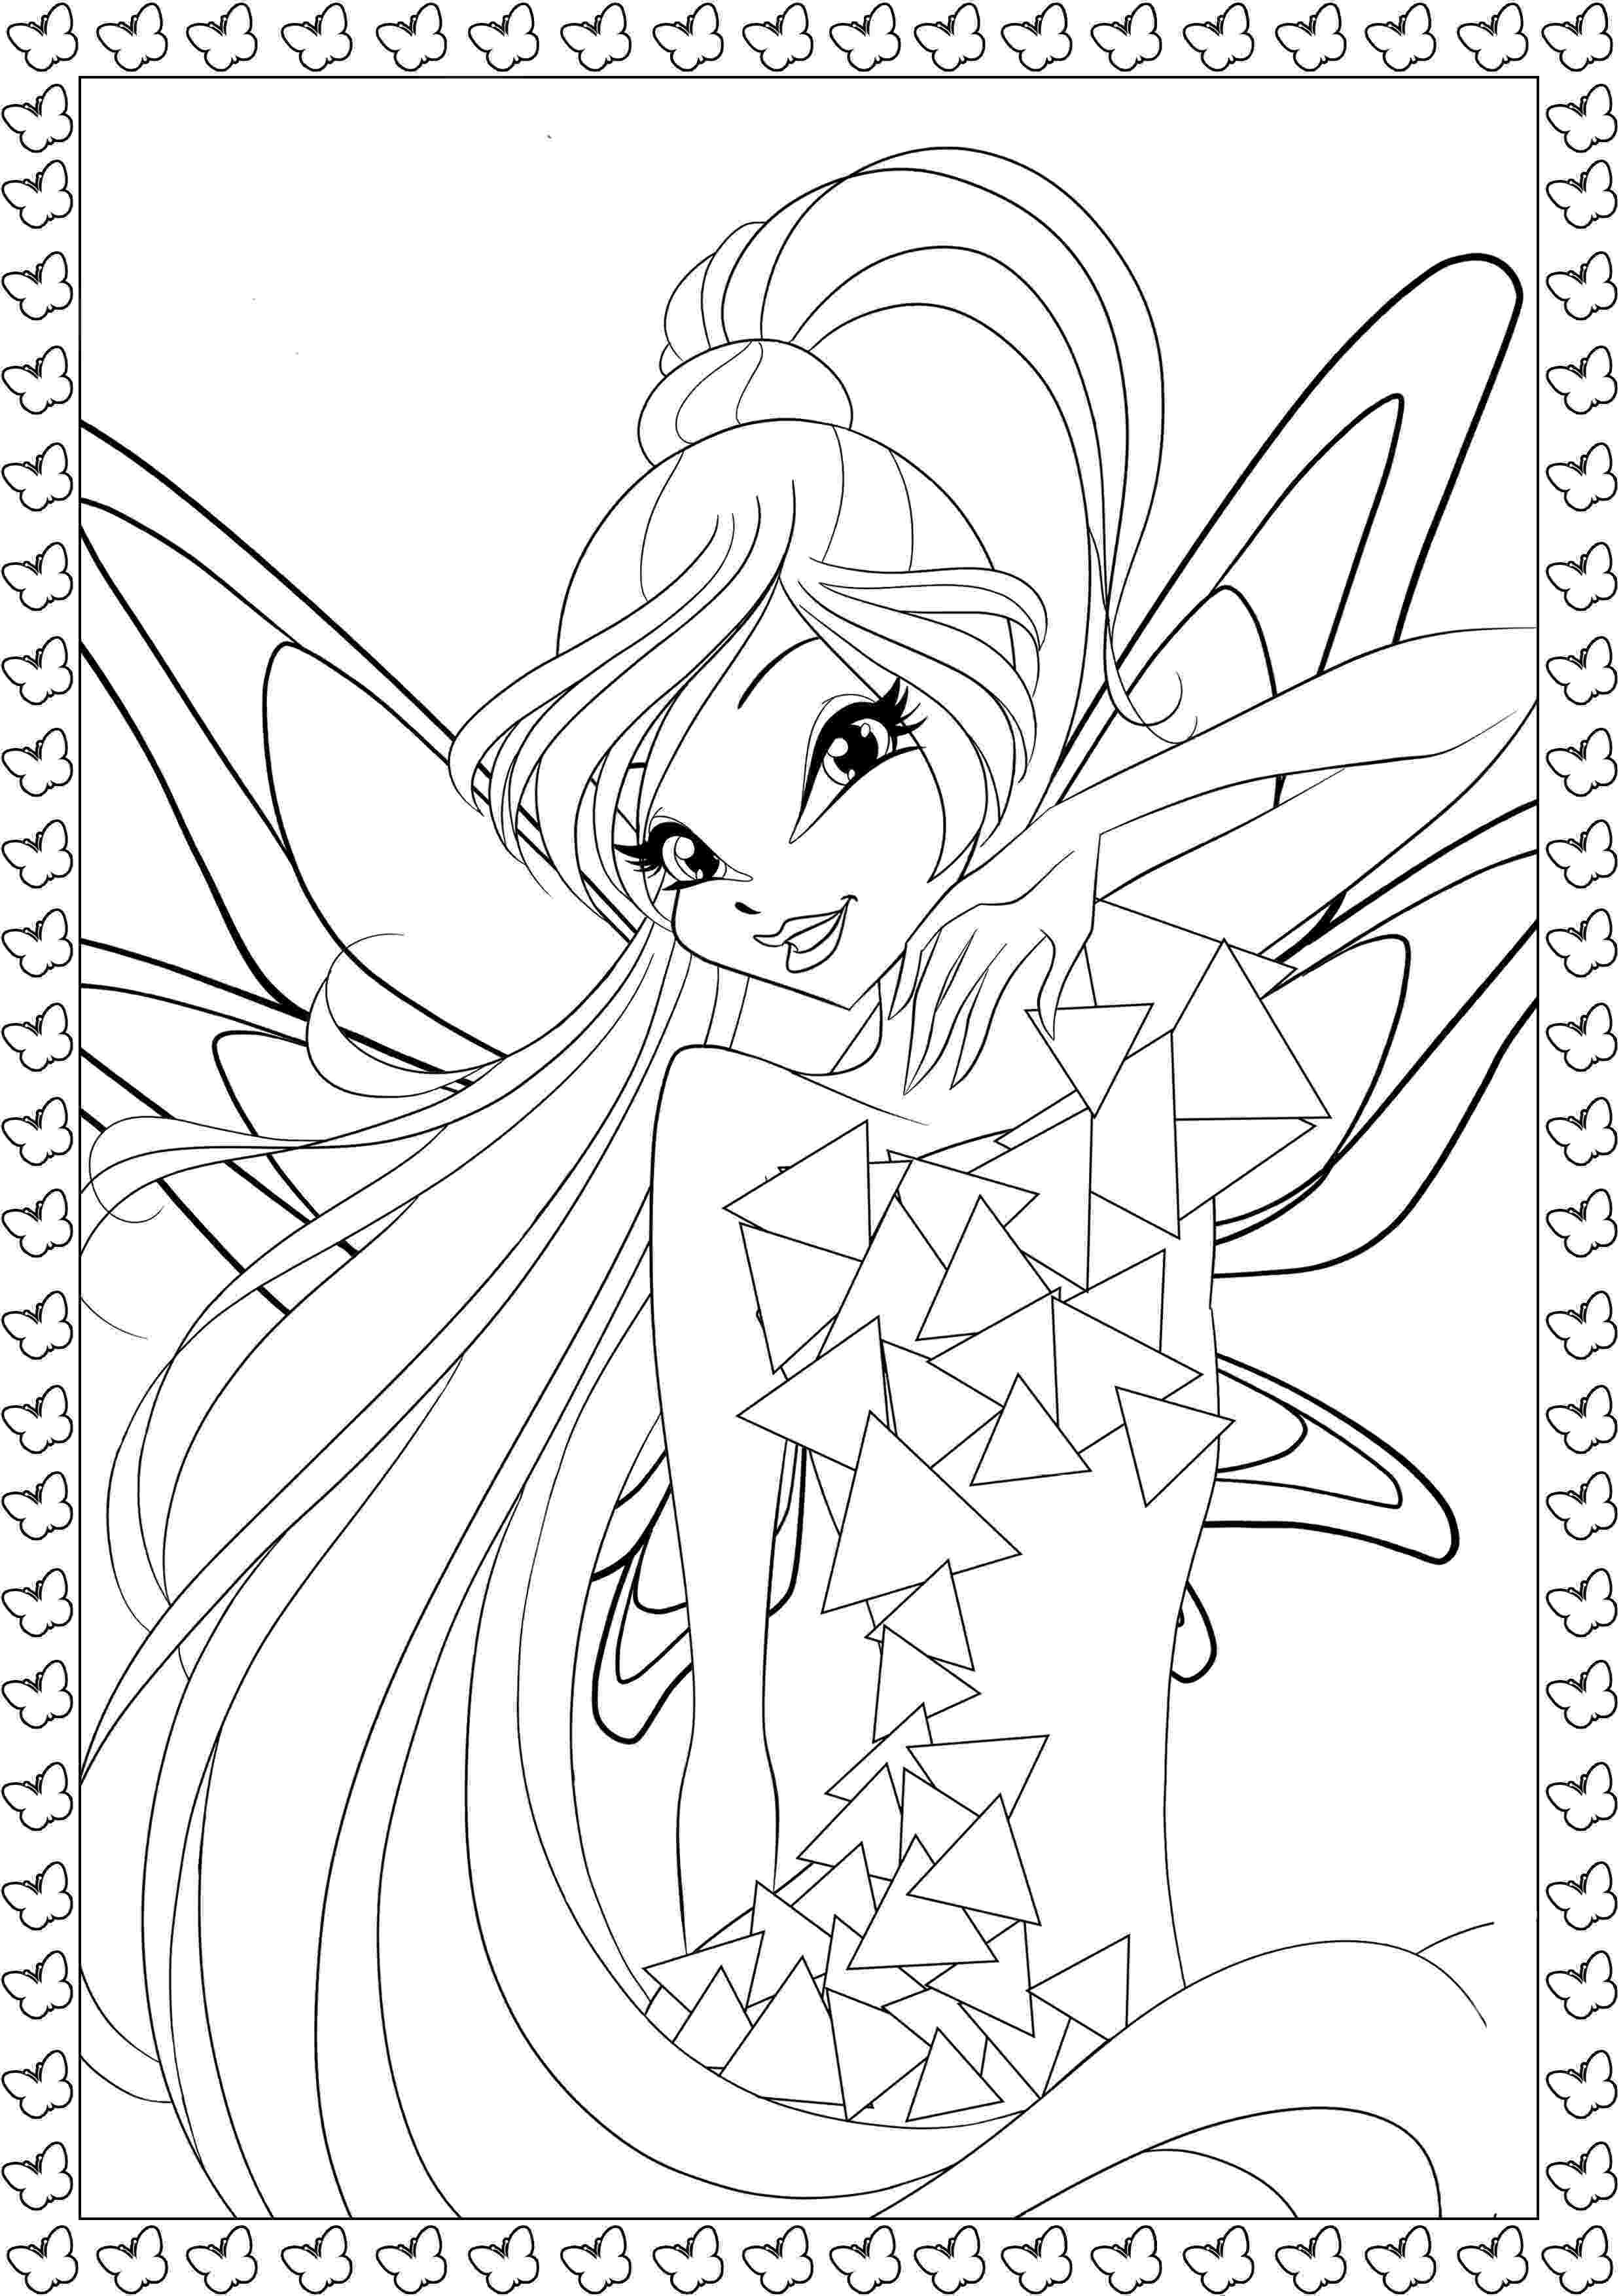 winx bloom coloring pages winx club bloomix coloring pages to download and print for bloom winx pages coloring